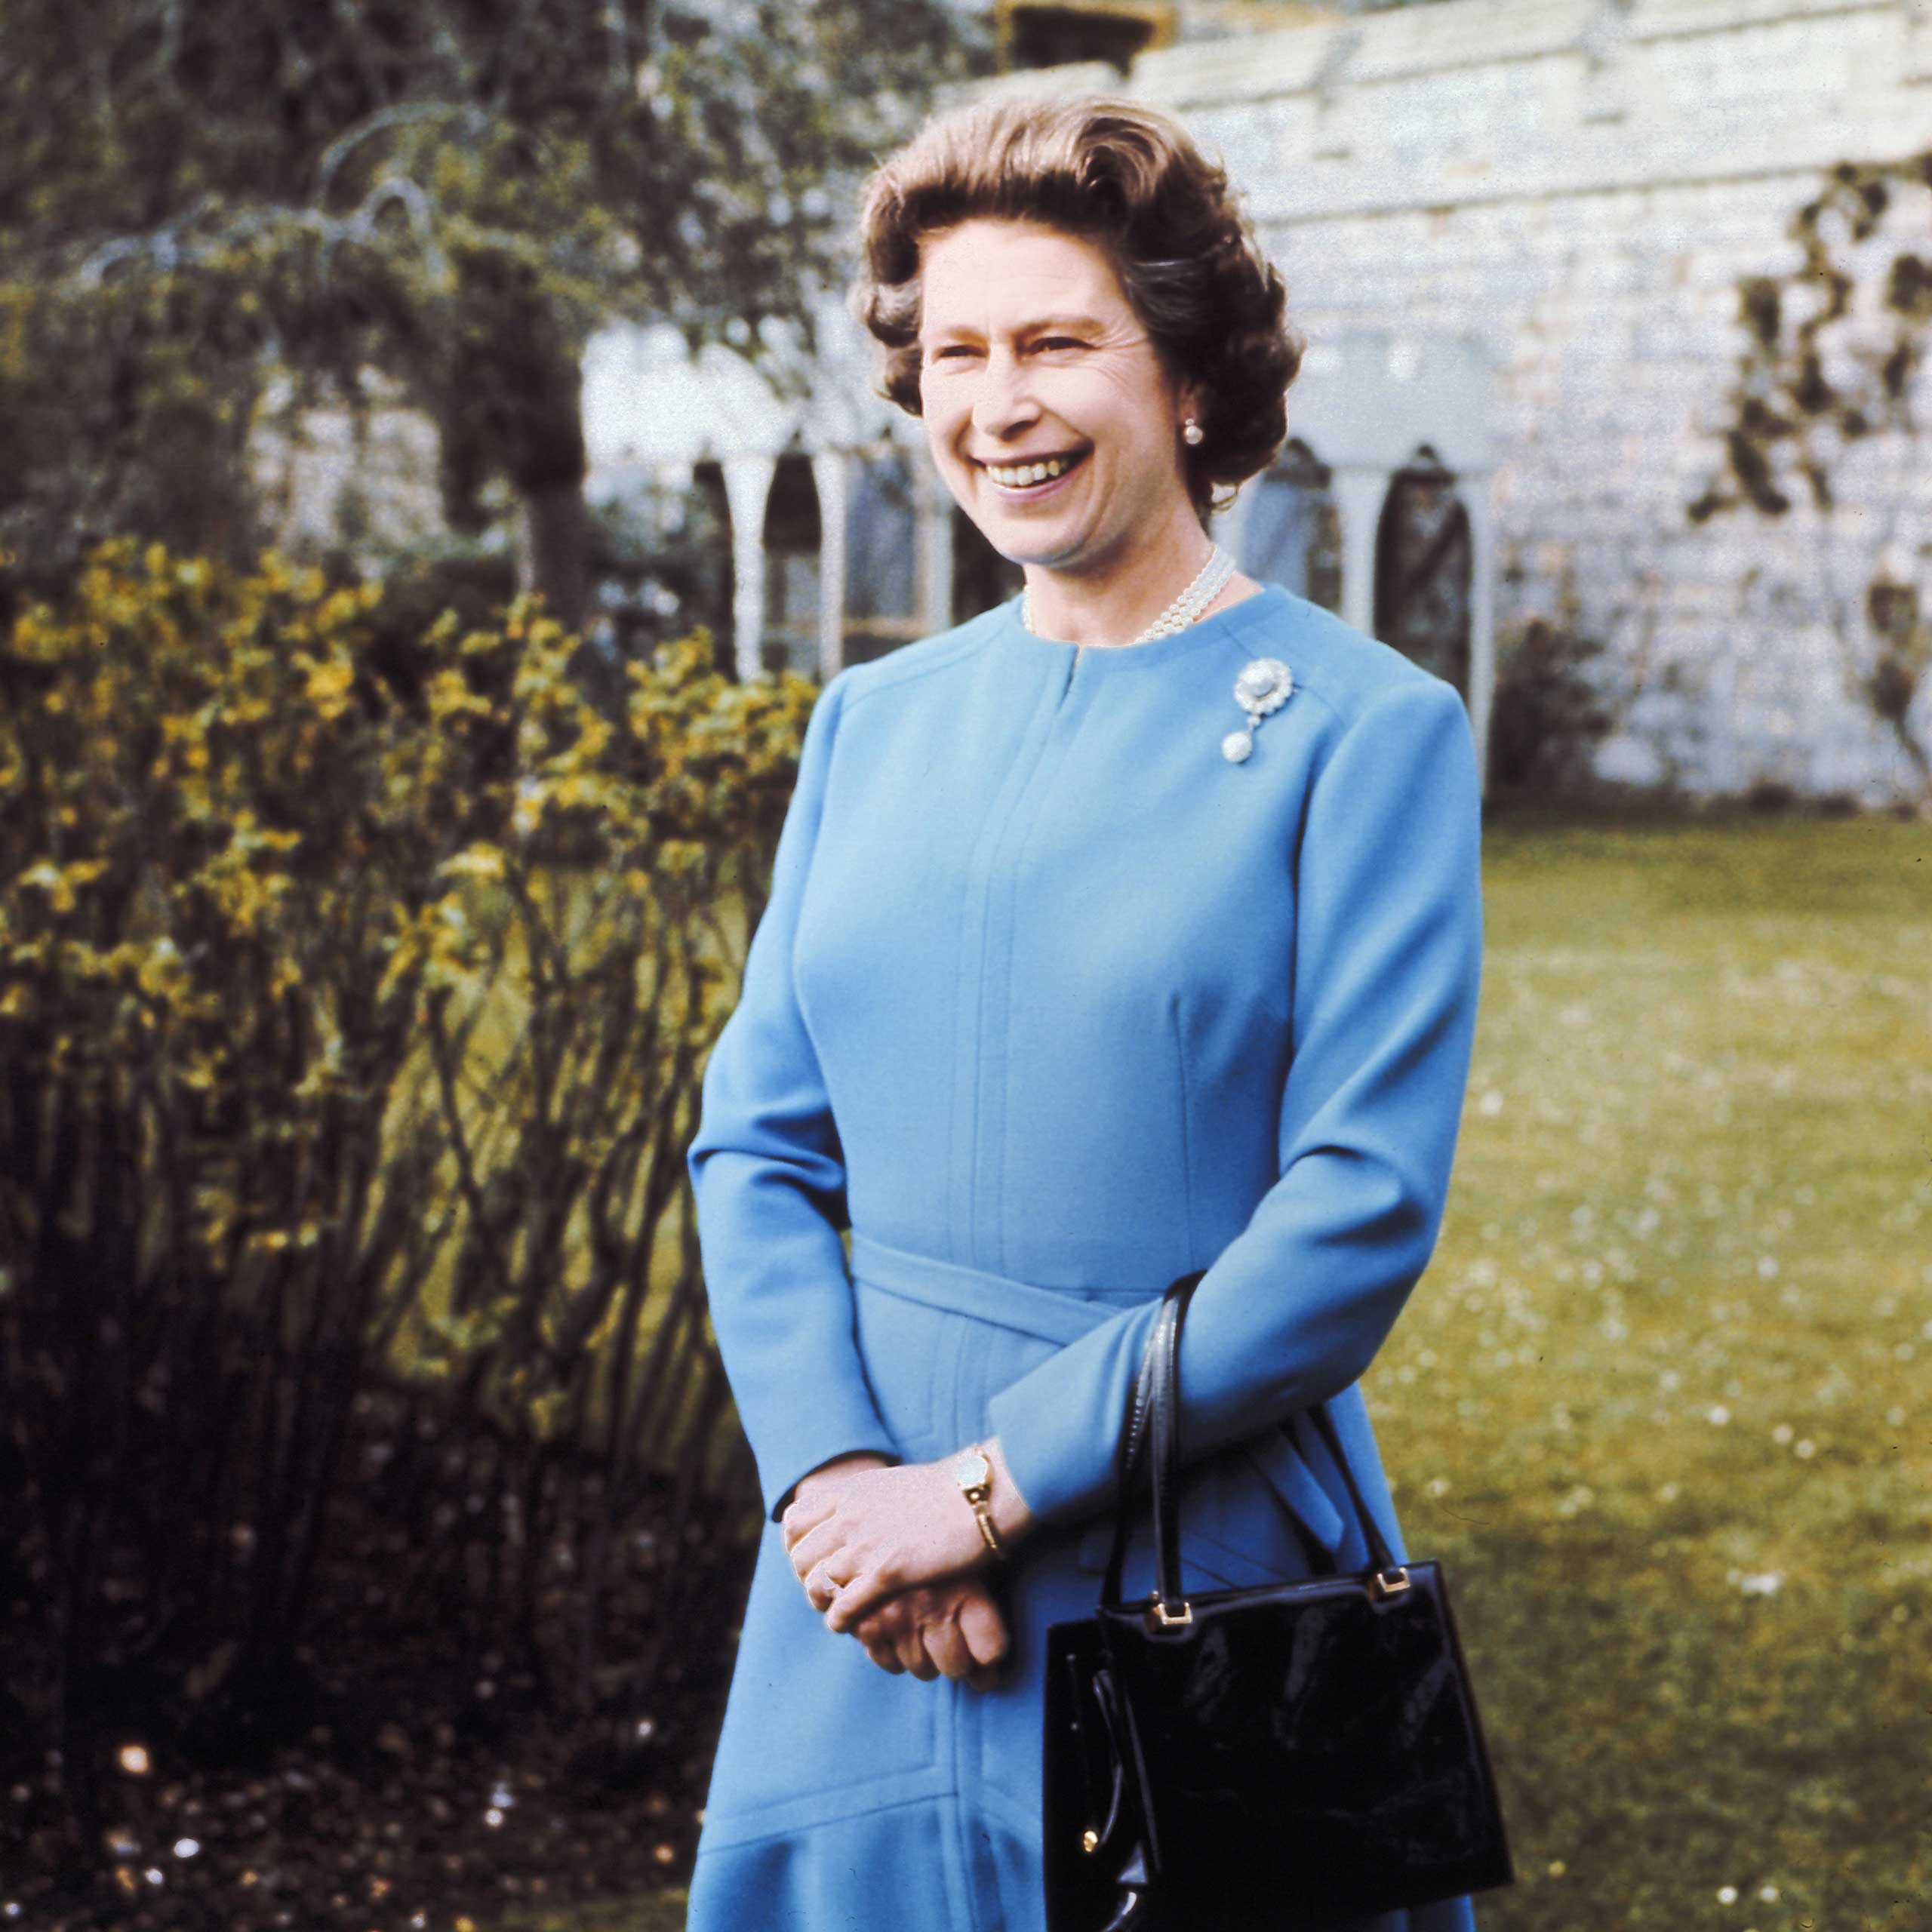 The Queen Elizabeth II on her 50th birthday in April 1976.